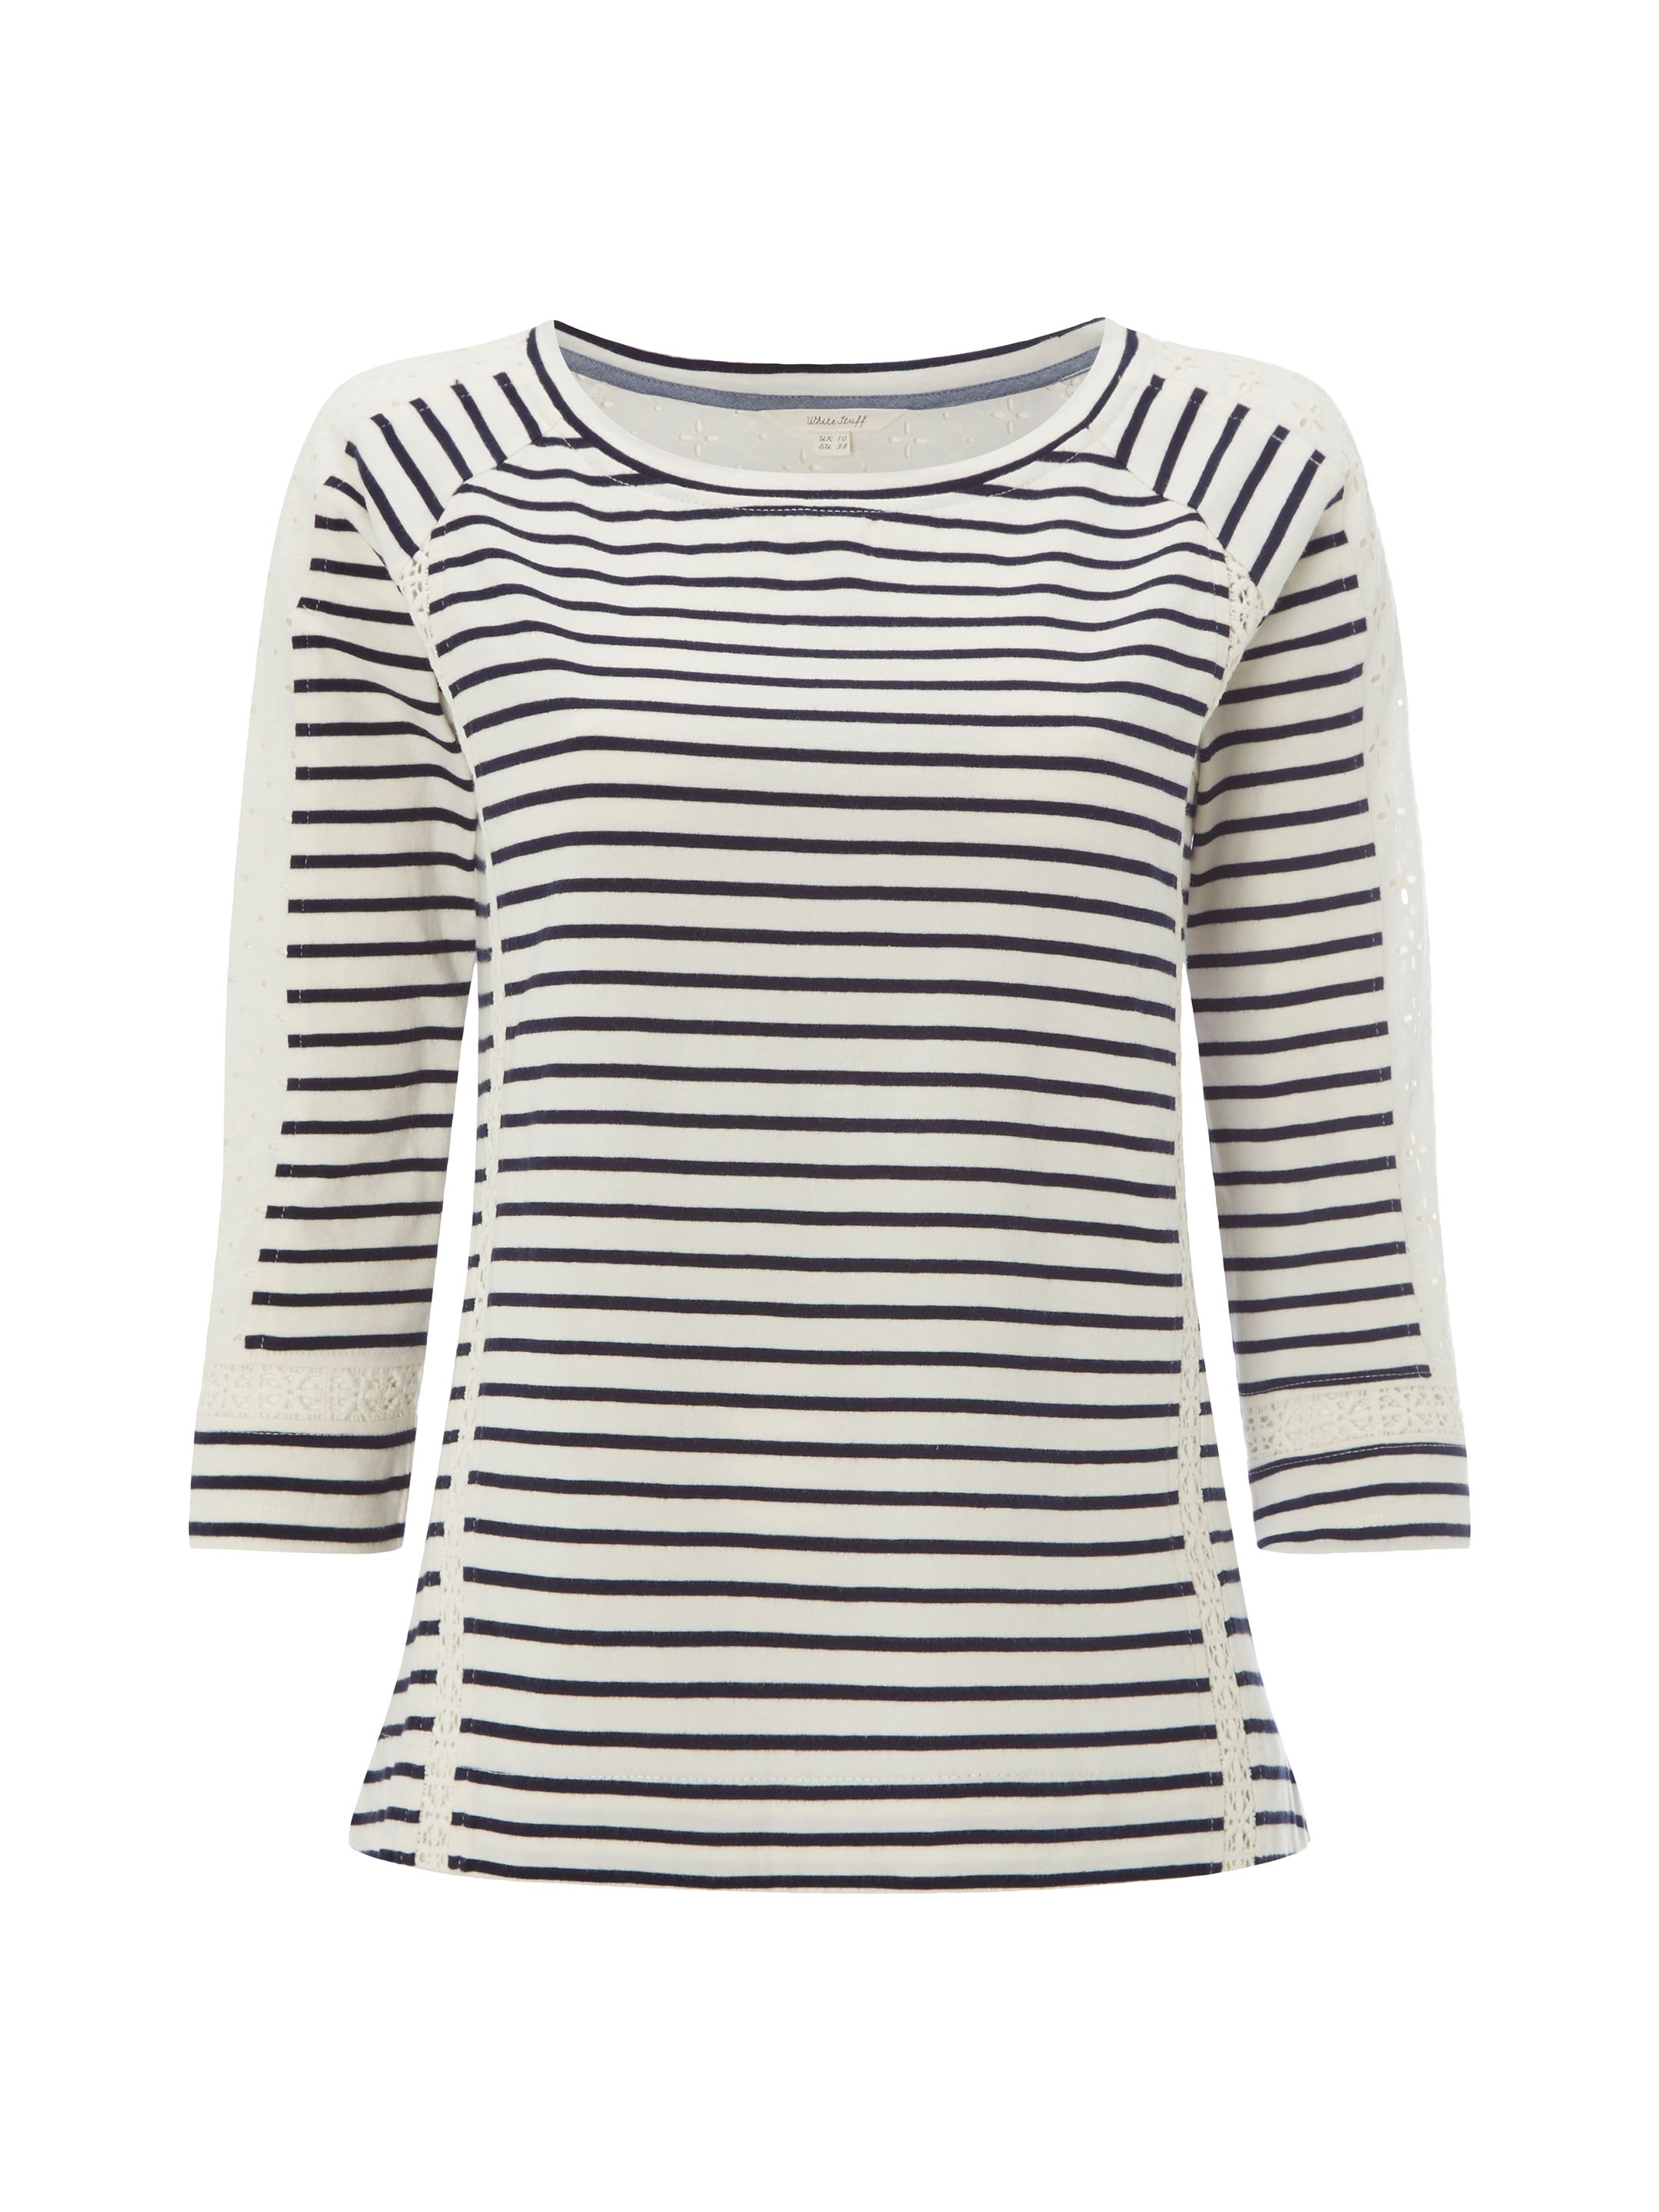 White Stuff Lace Stripe Jersey Tee, Blue